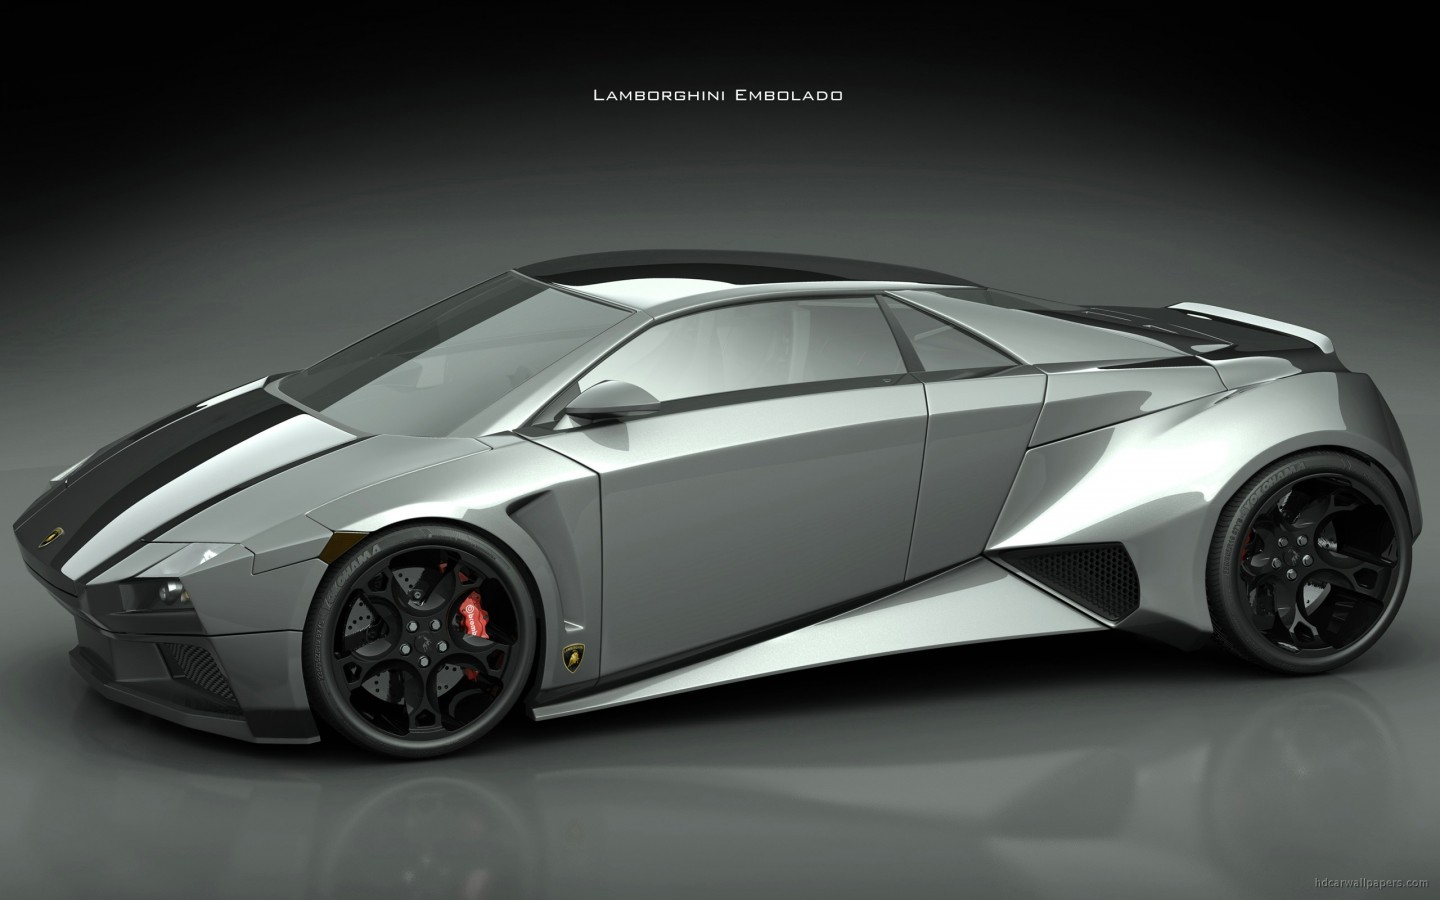 Lamborghini Embolado Wallpaper In 1440x900 Resolution